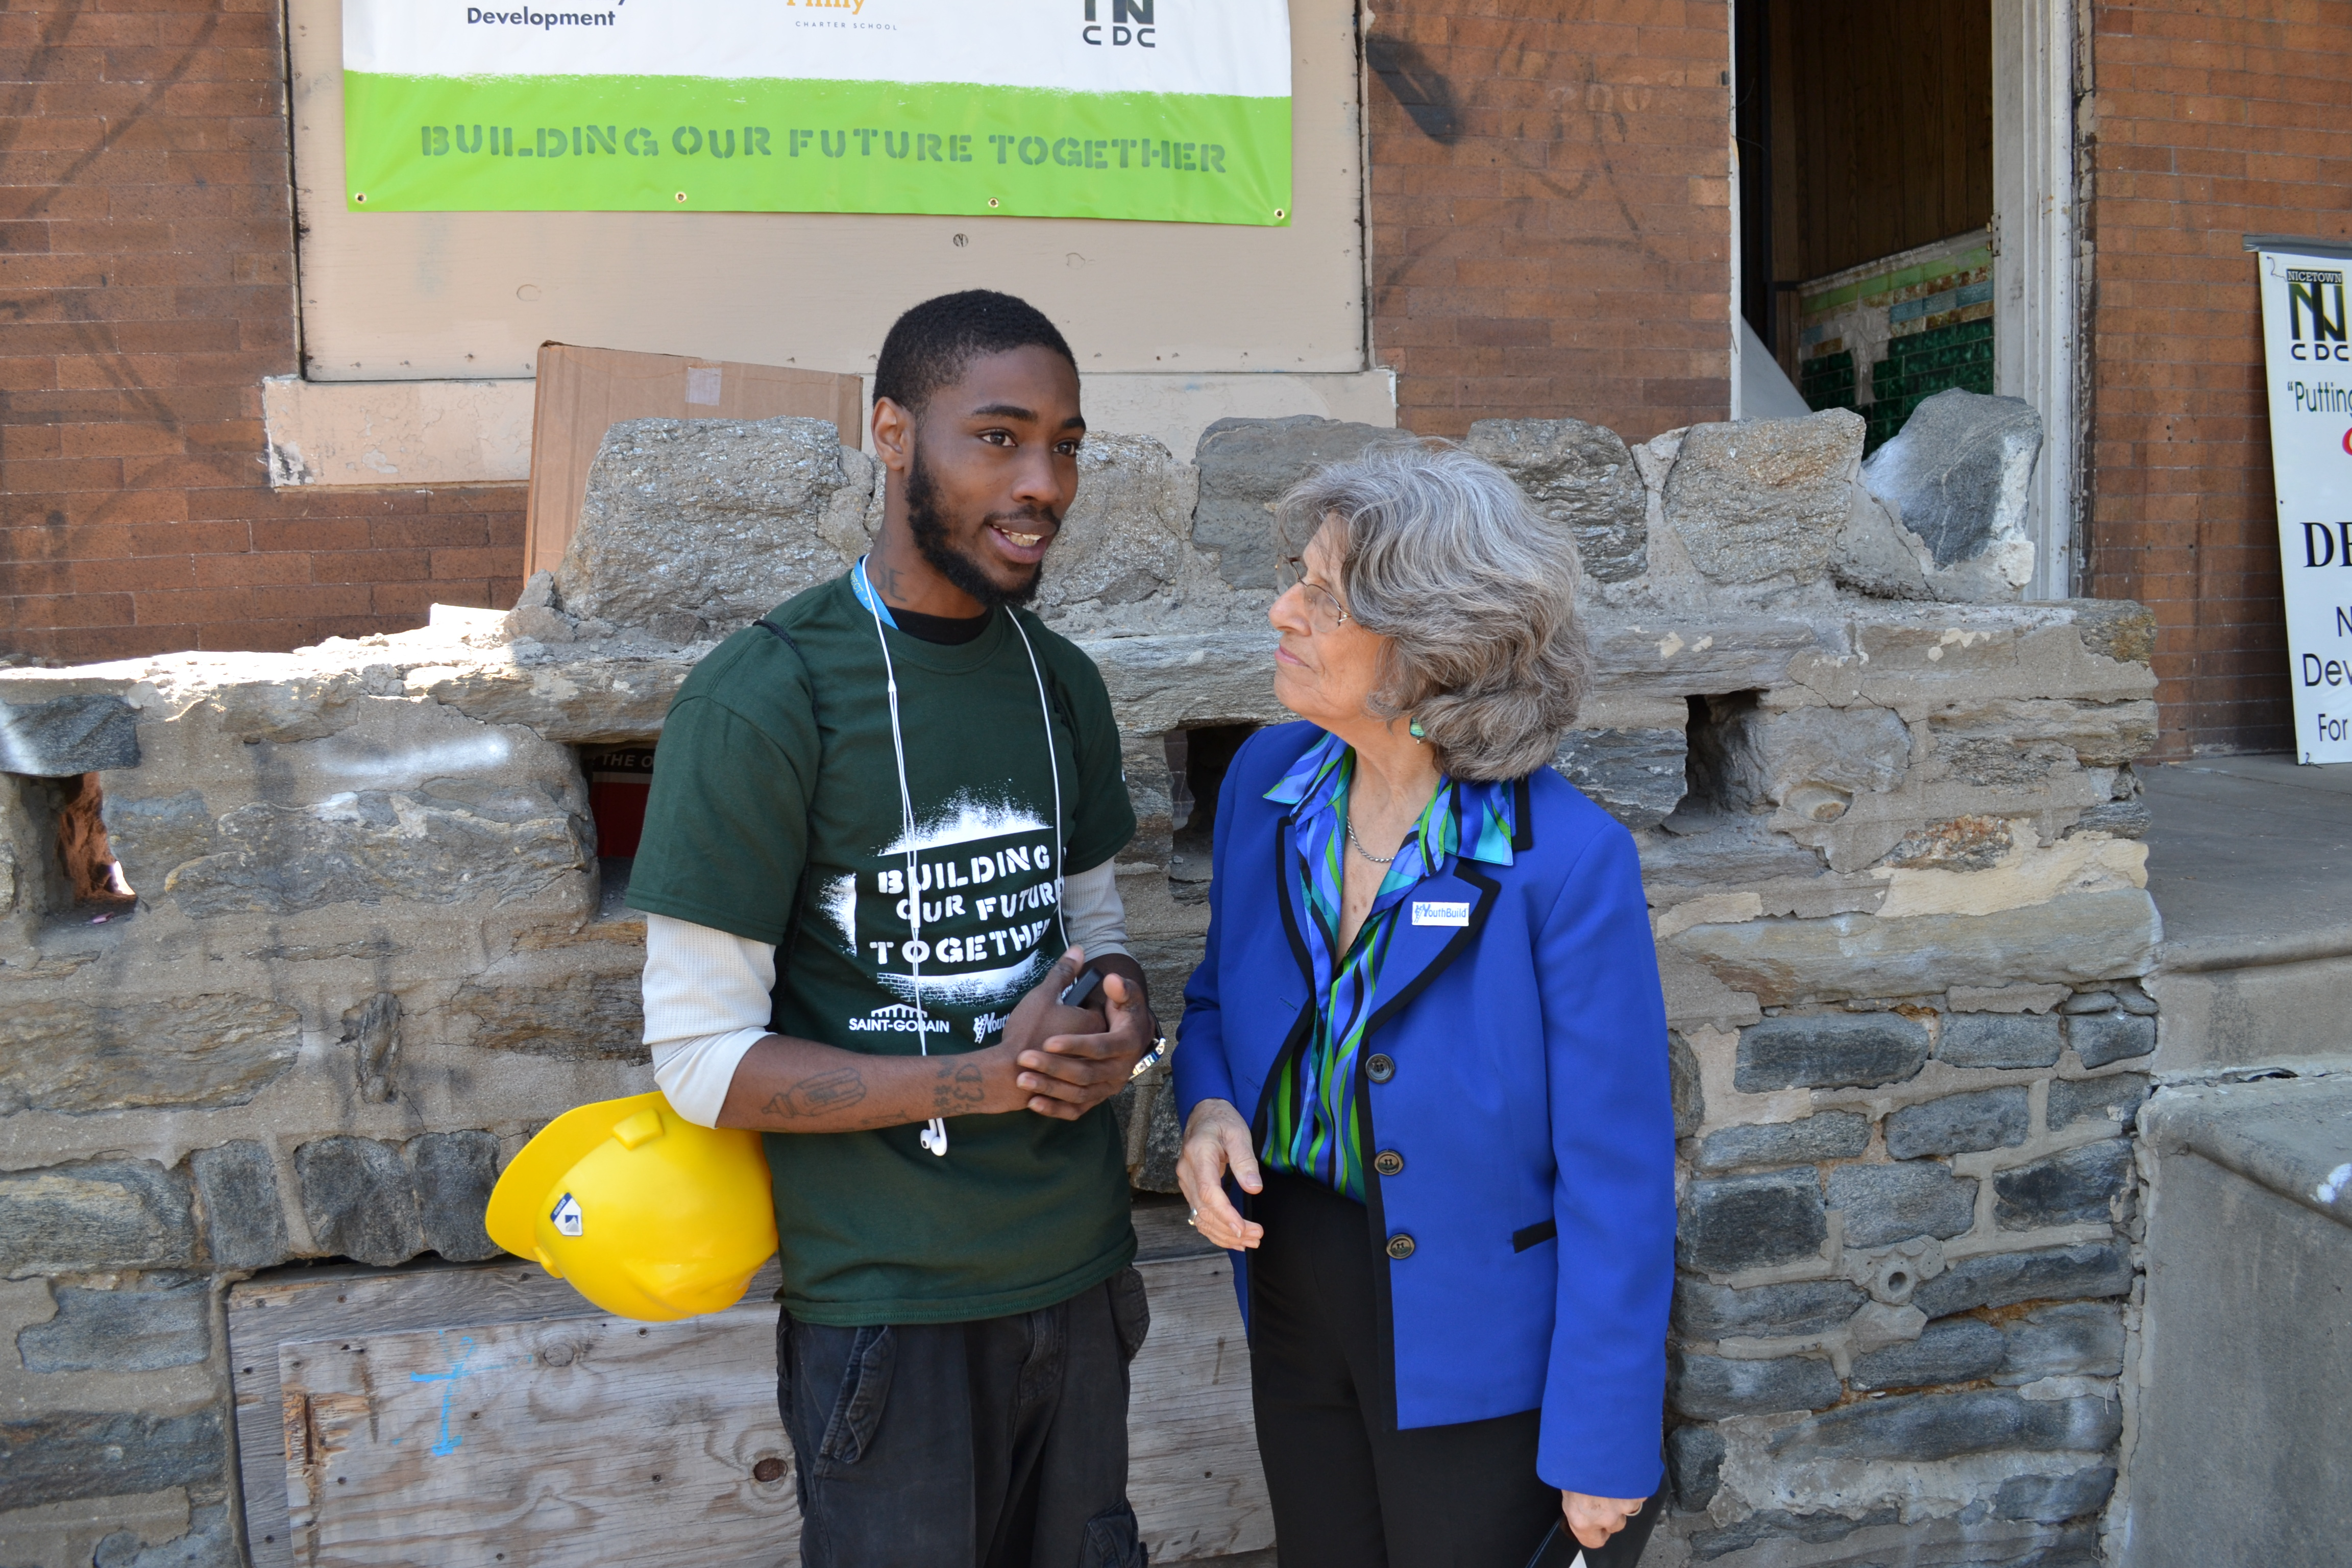 YouthBuild USA CEO and founder Dorothy Stoneman spoke with all of the YouthBuild Philadelphia students